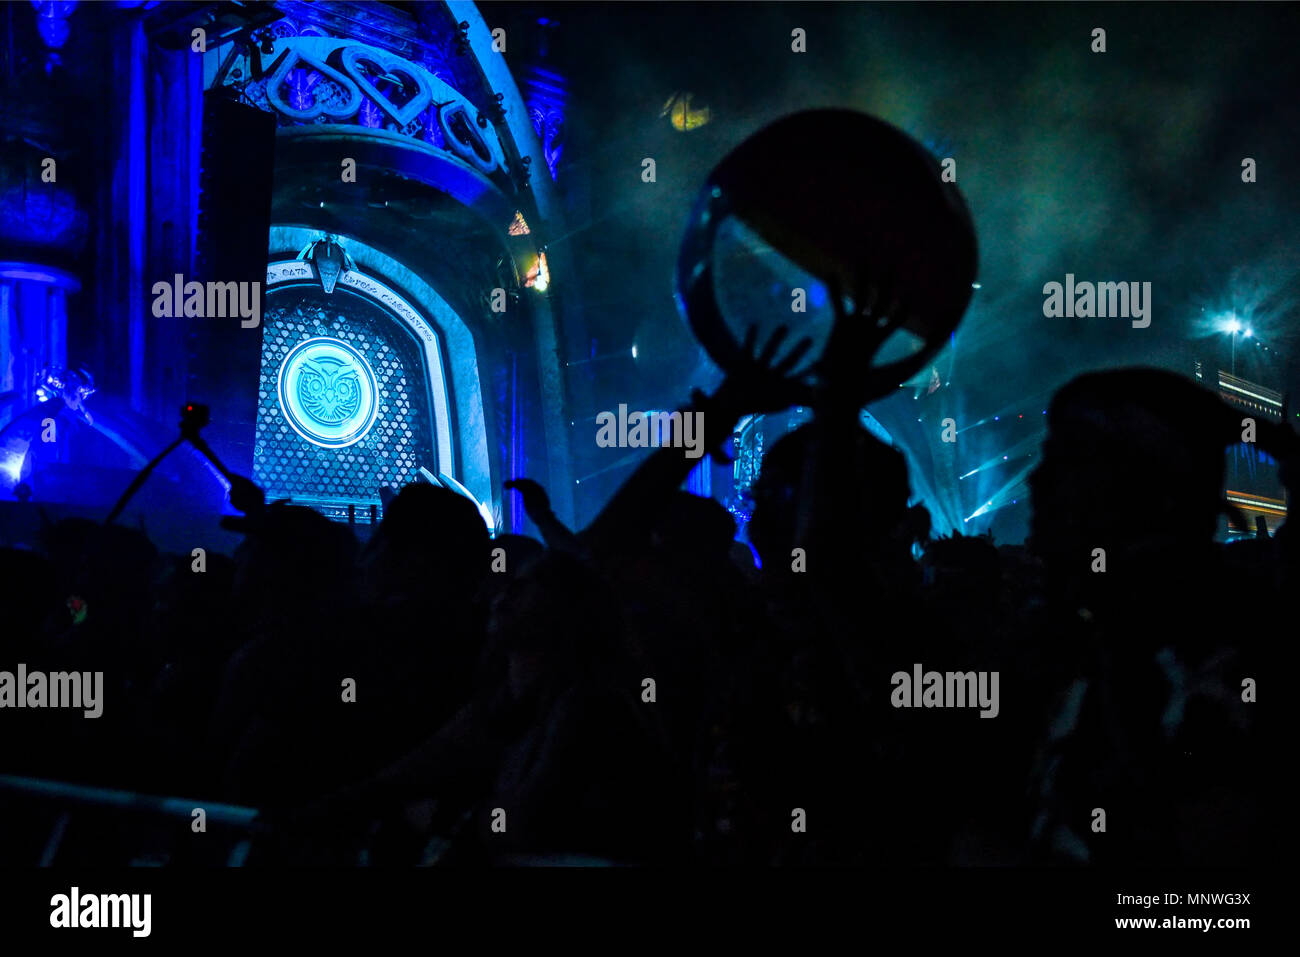 Las Vegas, Nevada, May 18, 2018, Silhouetted crowd in front of the Kinetic Stage at the Electric Daisy Carnival, edc festival, Day 1, Credit: Ken Howard Images/Alamy Live News - Stock Image